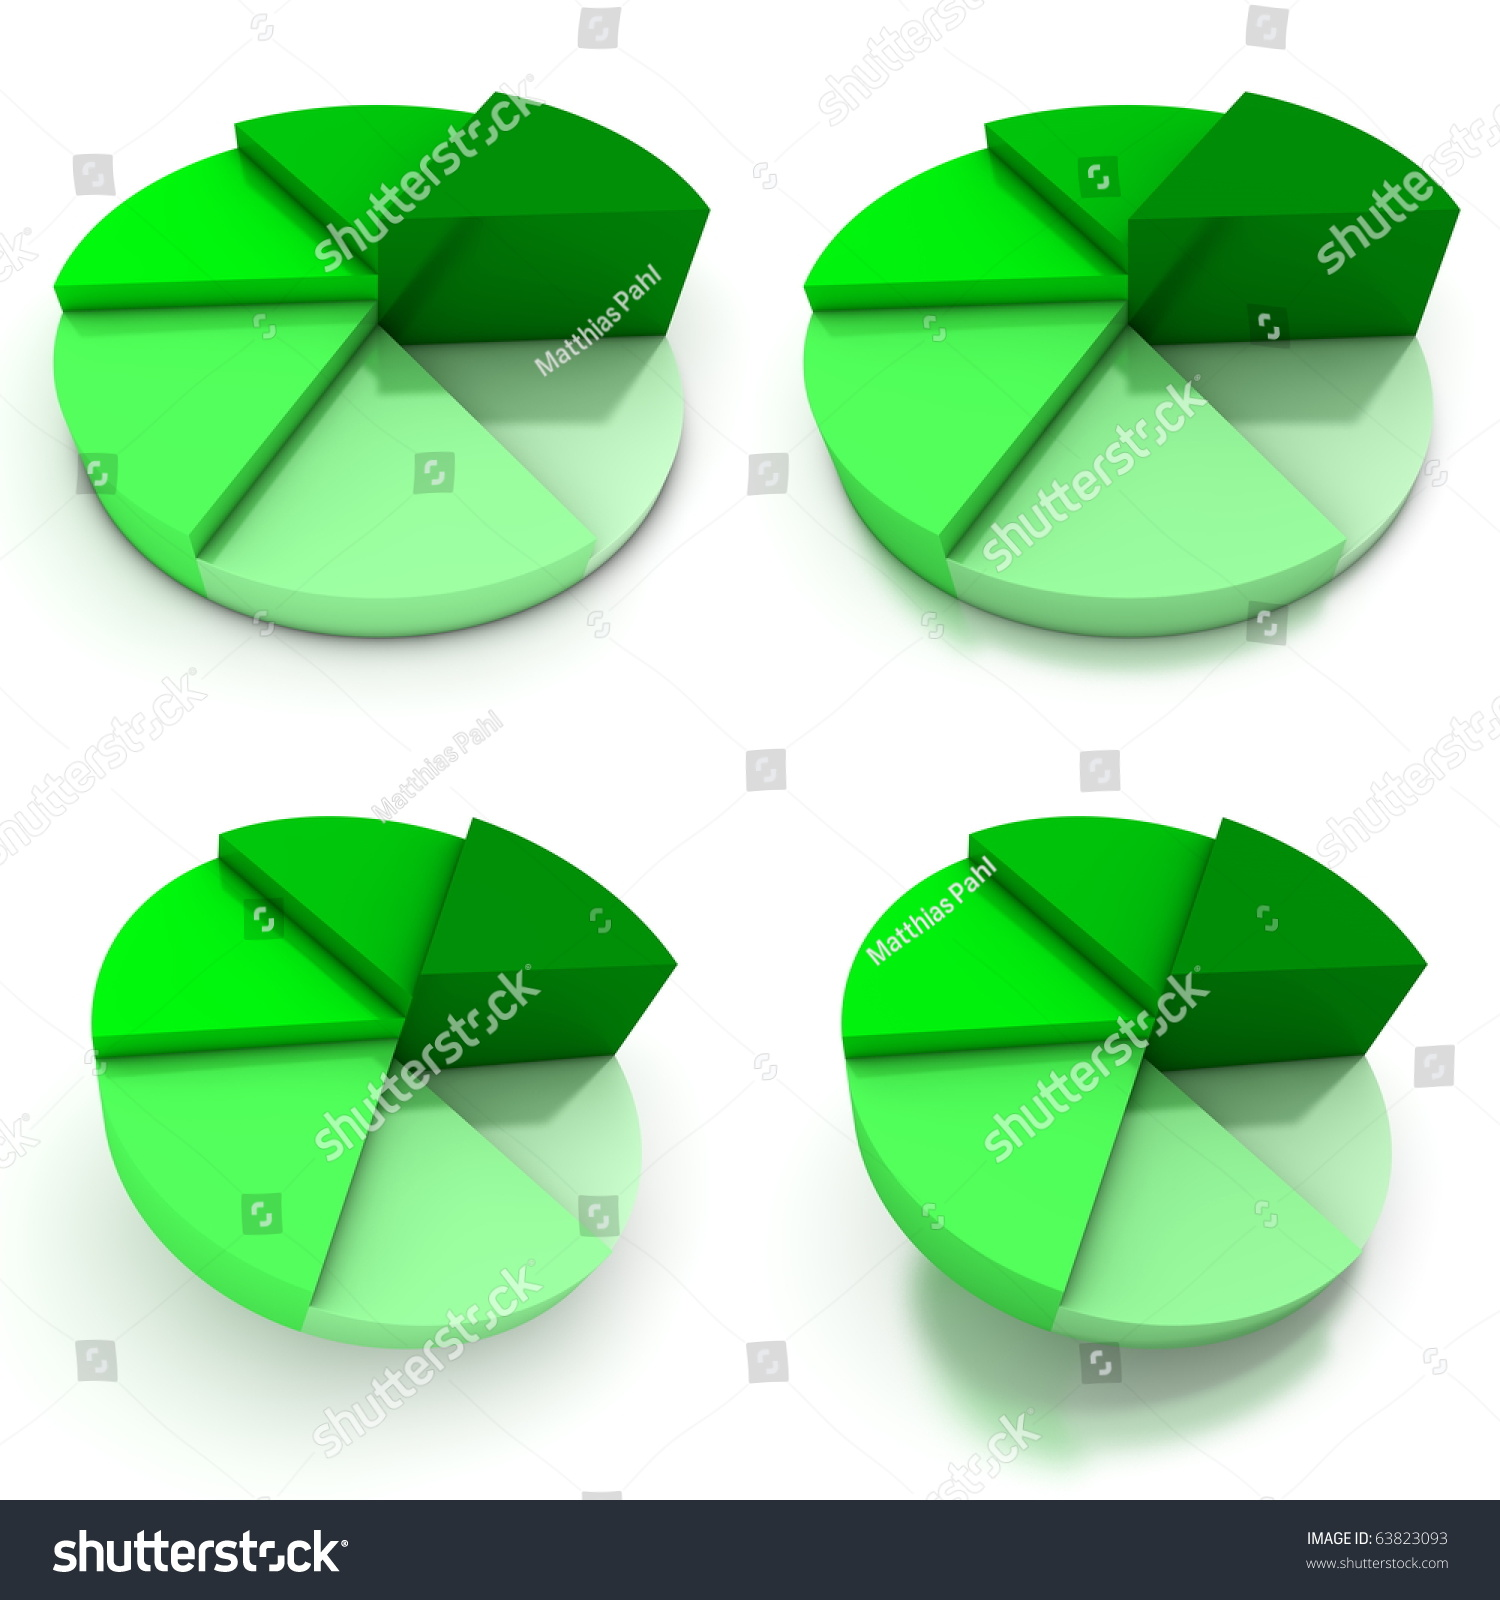 Colored Pie Chart Six Shades Green Stock Illustration 63823093